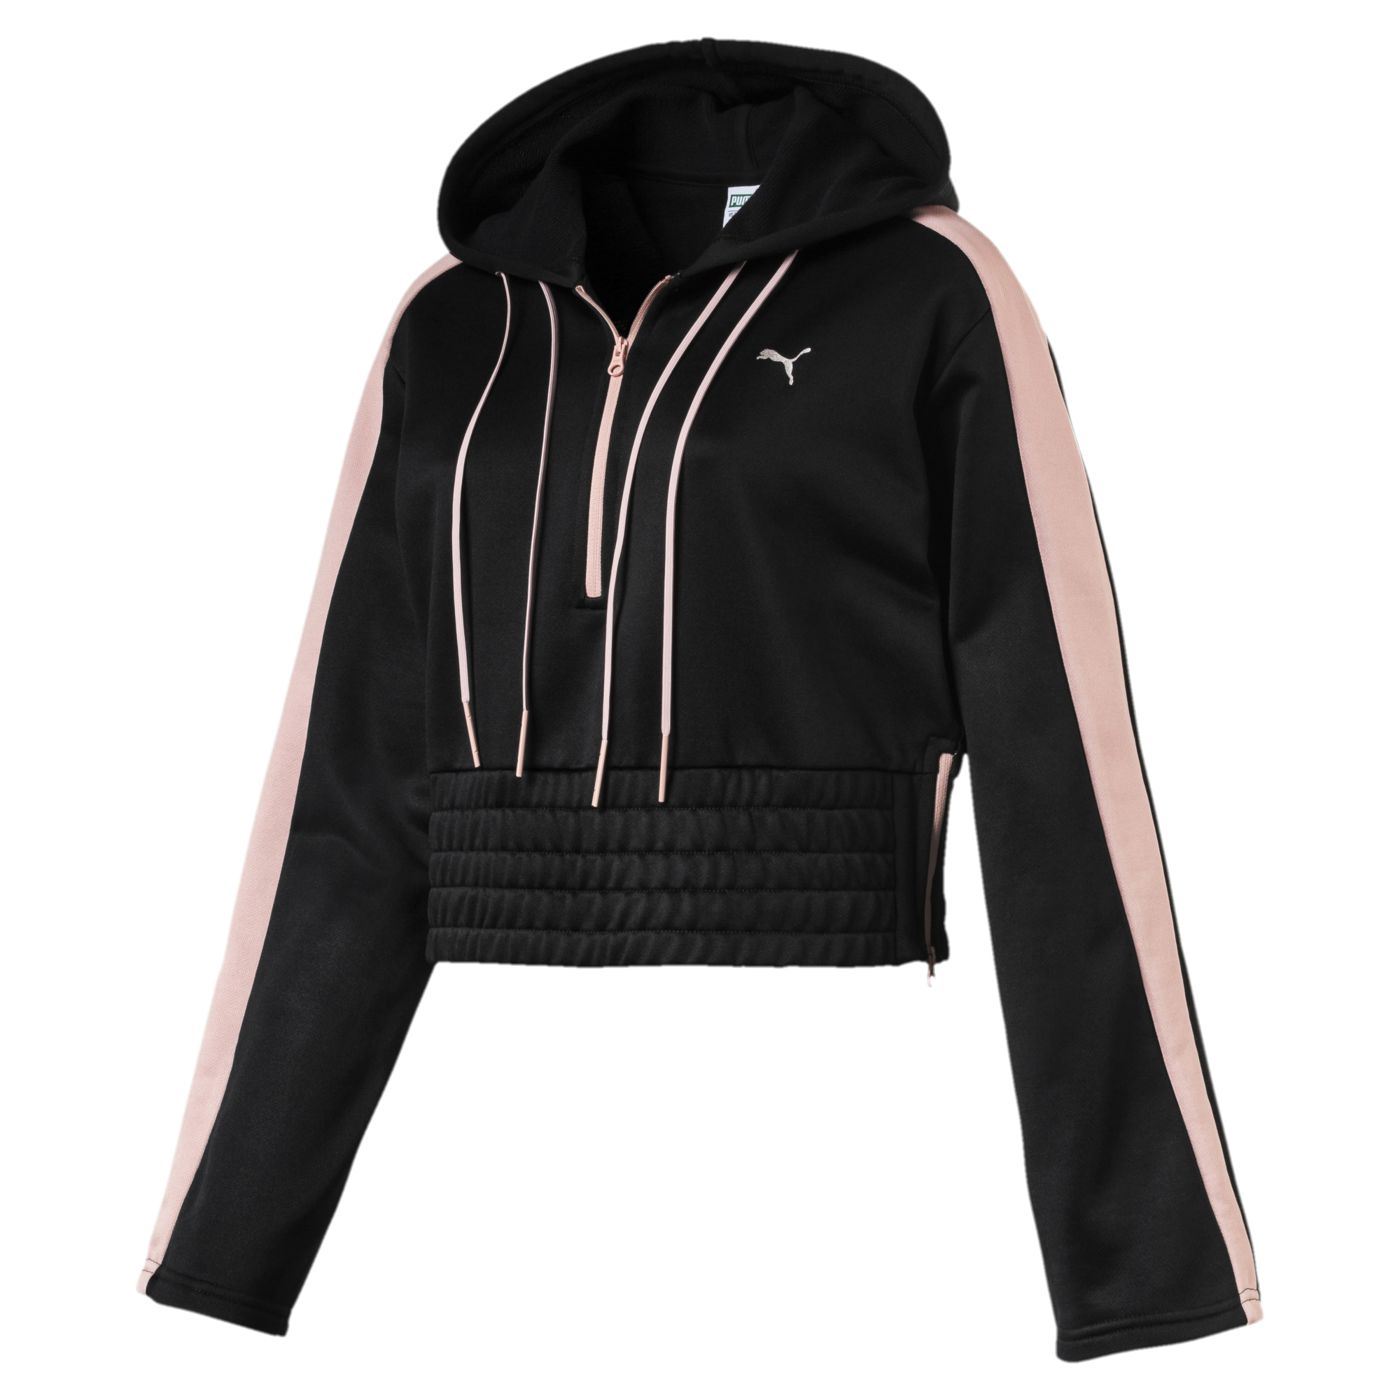 Black and pink puma sports jacket hoody